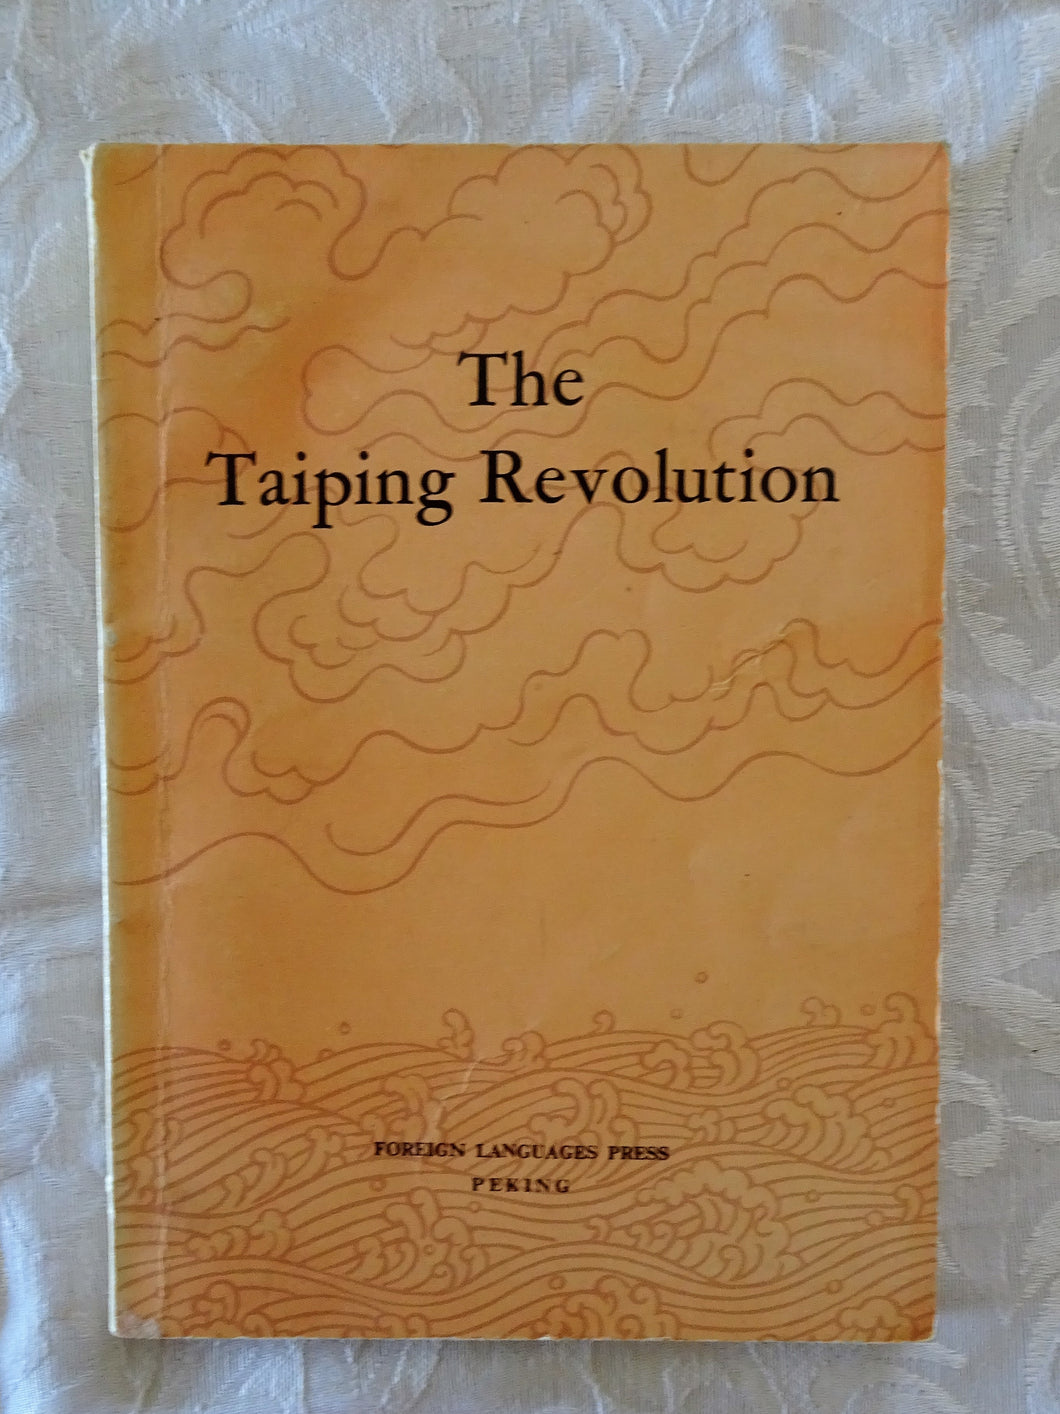 The Taiping Revolution by the Compilation Group for the